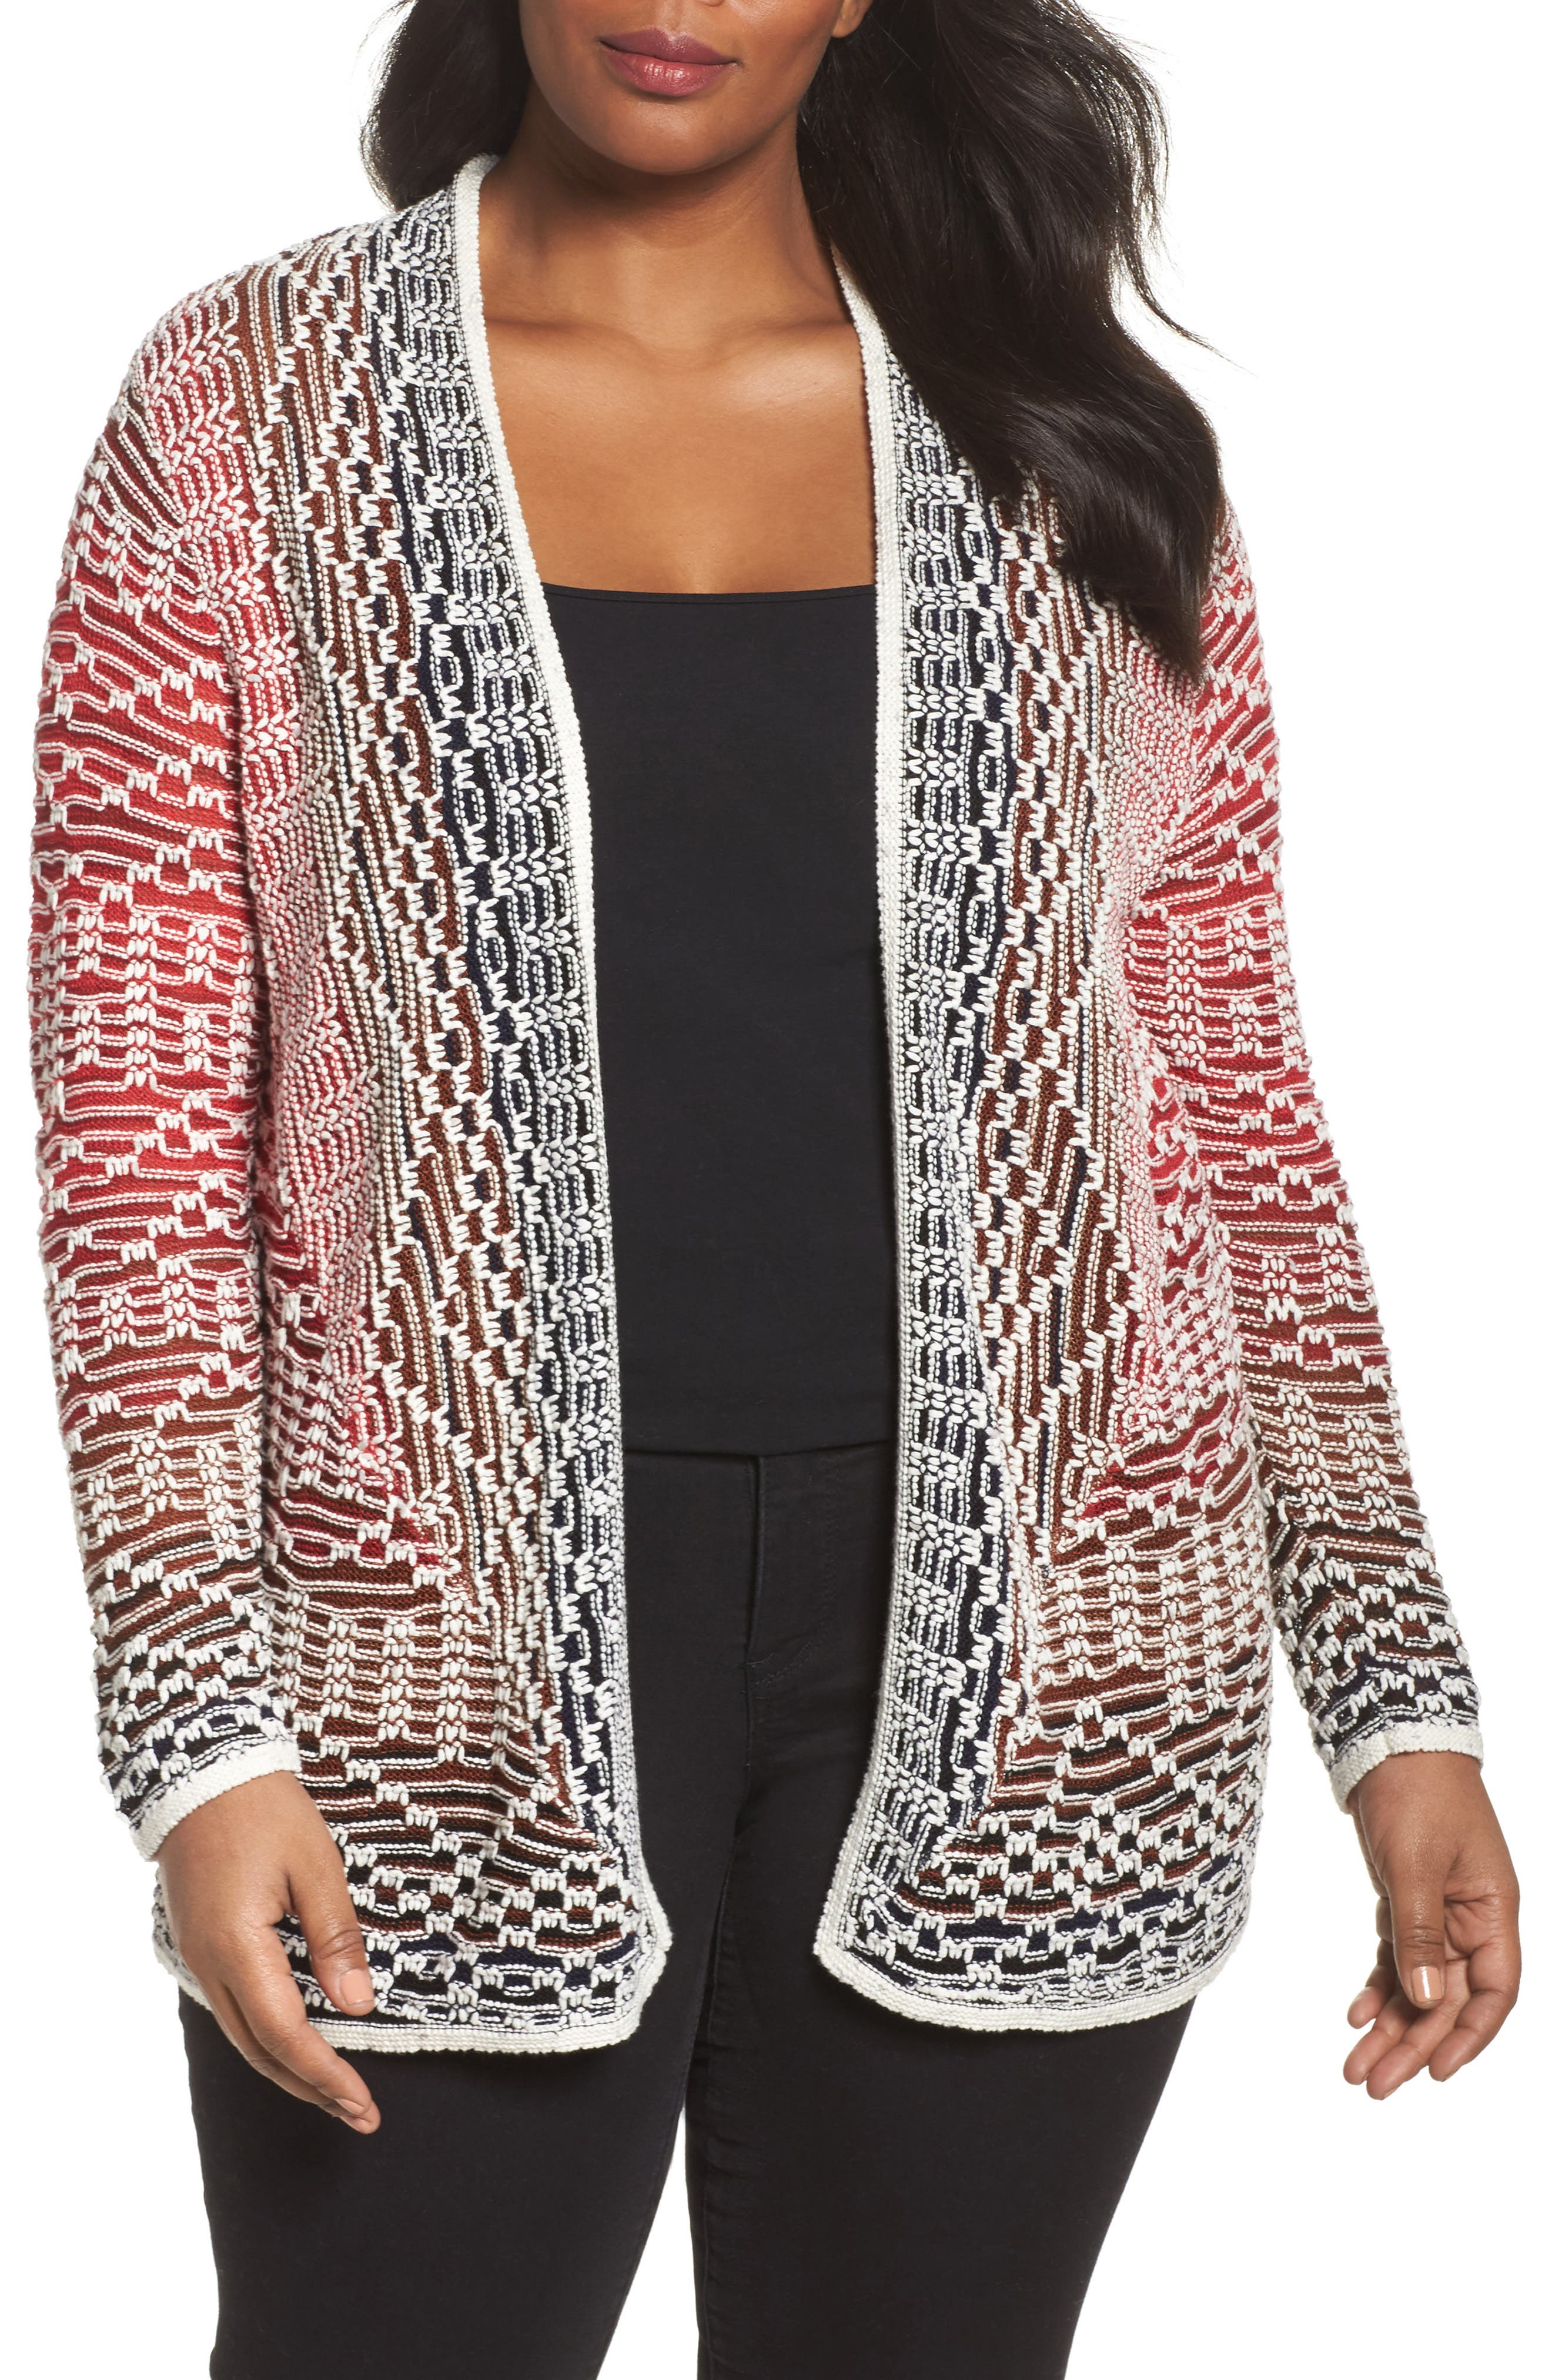 Main Image - NIC+ZOE Fireside Cardigan (Plus Size)